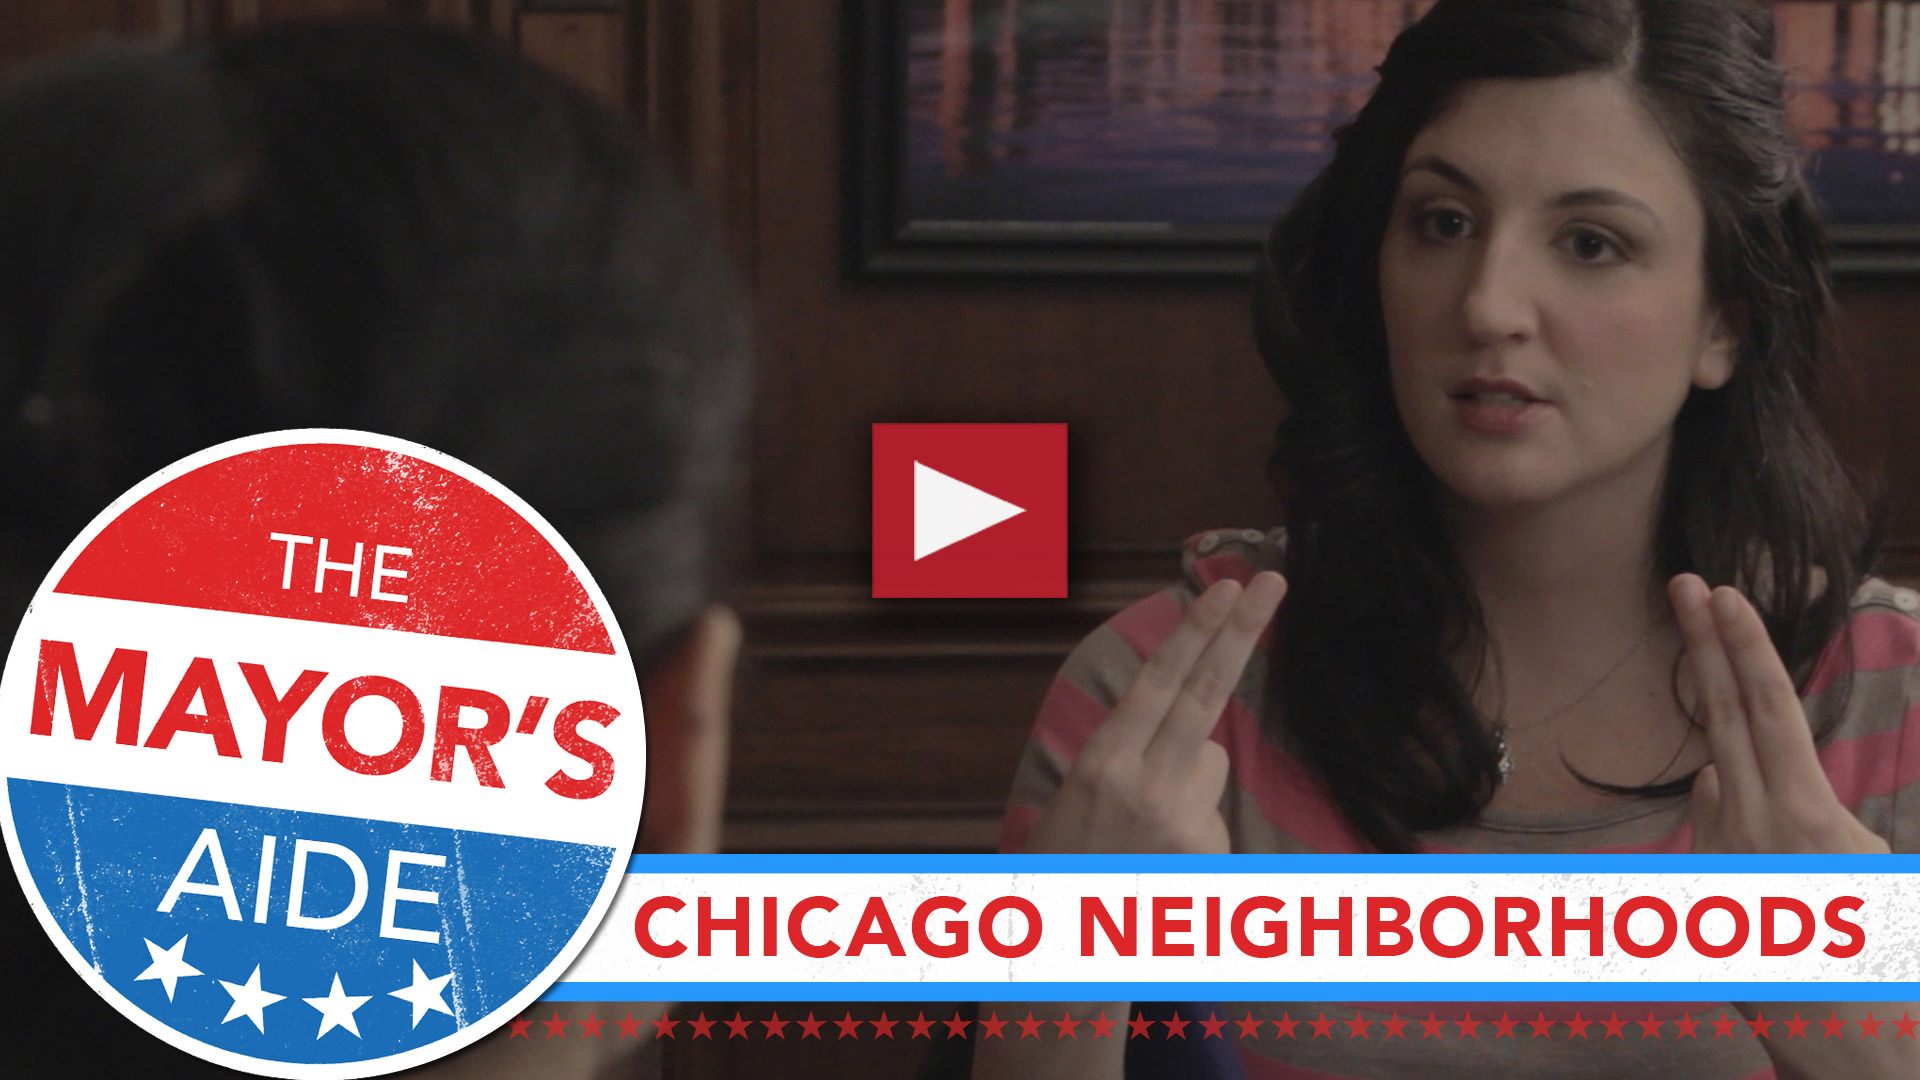 The Mayor's Aide – Chicago Neighborhoods